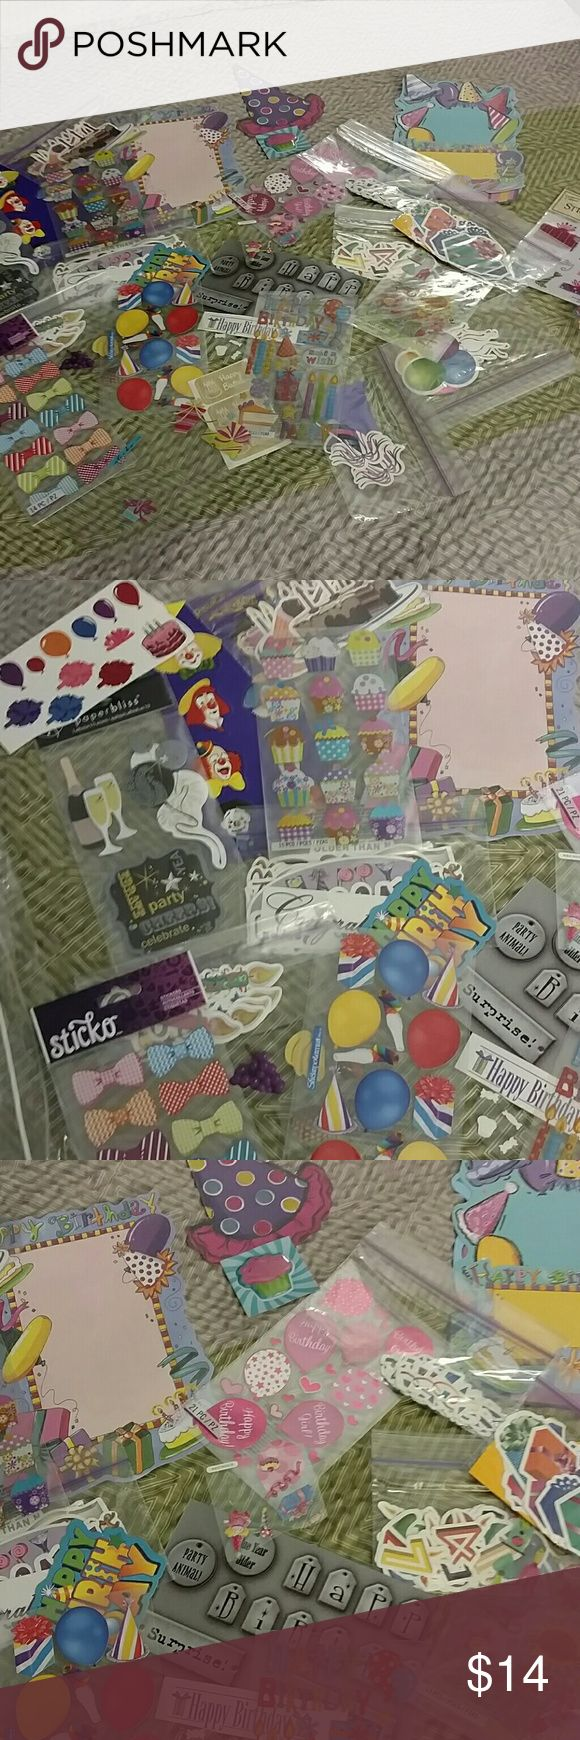 Scrapbooking stickers birthday New and like new scrapbooking bundle stickers and cutouts birthday themed. I also offer local pickup only on other websites if that's something you're interested in please feel free to contact me. Thanks you have a wonderful day Other